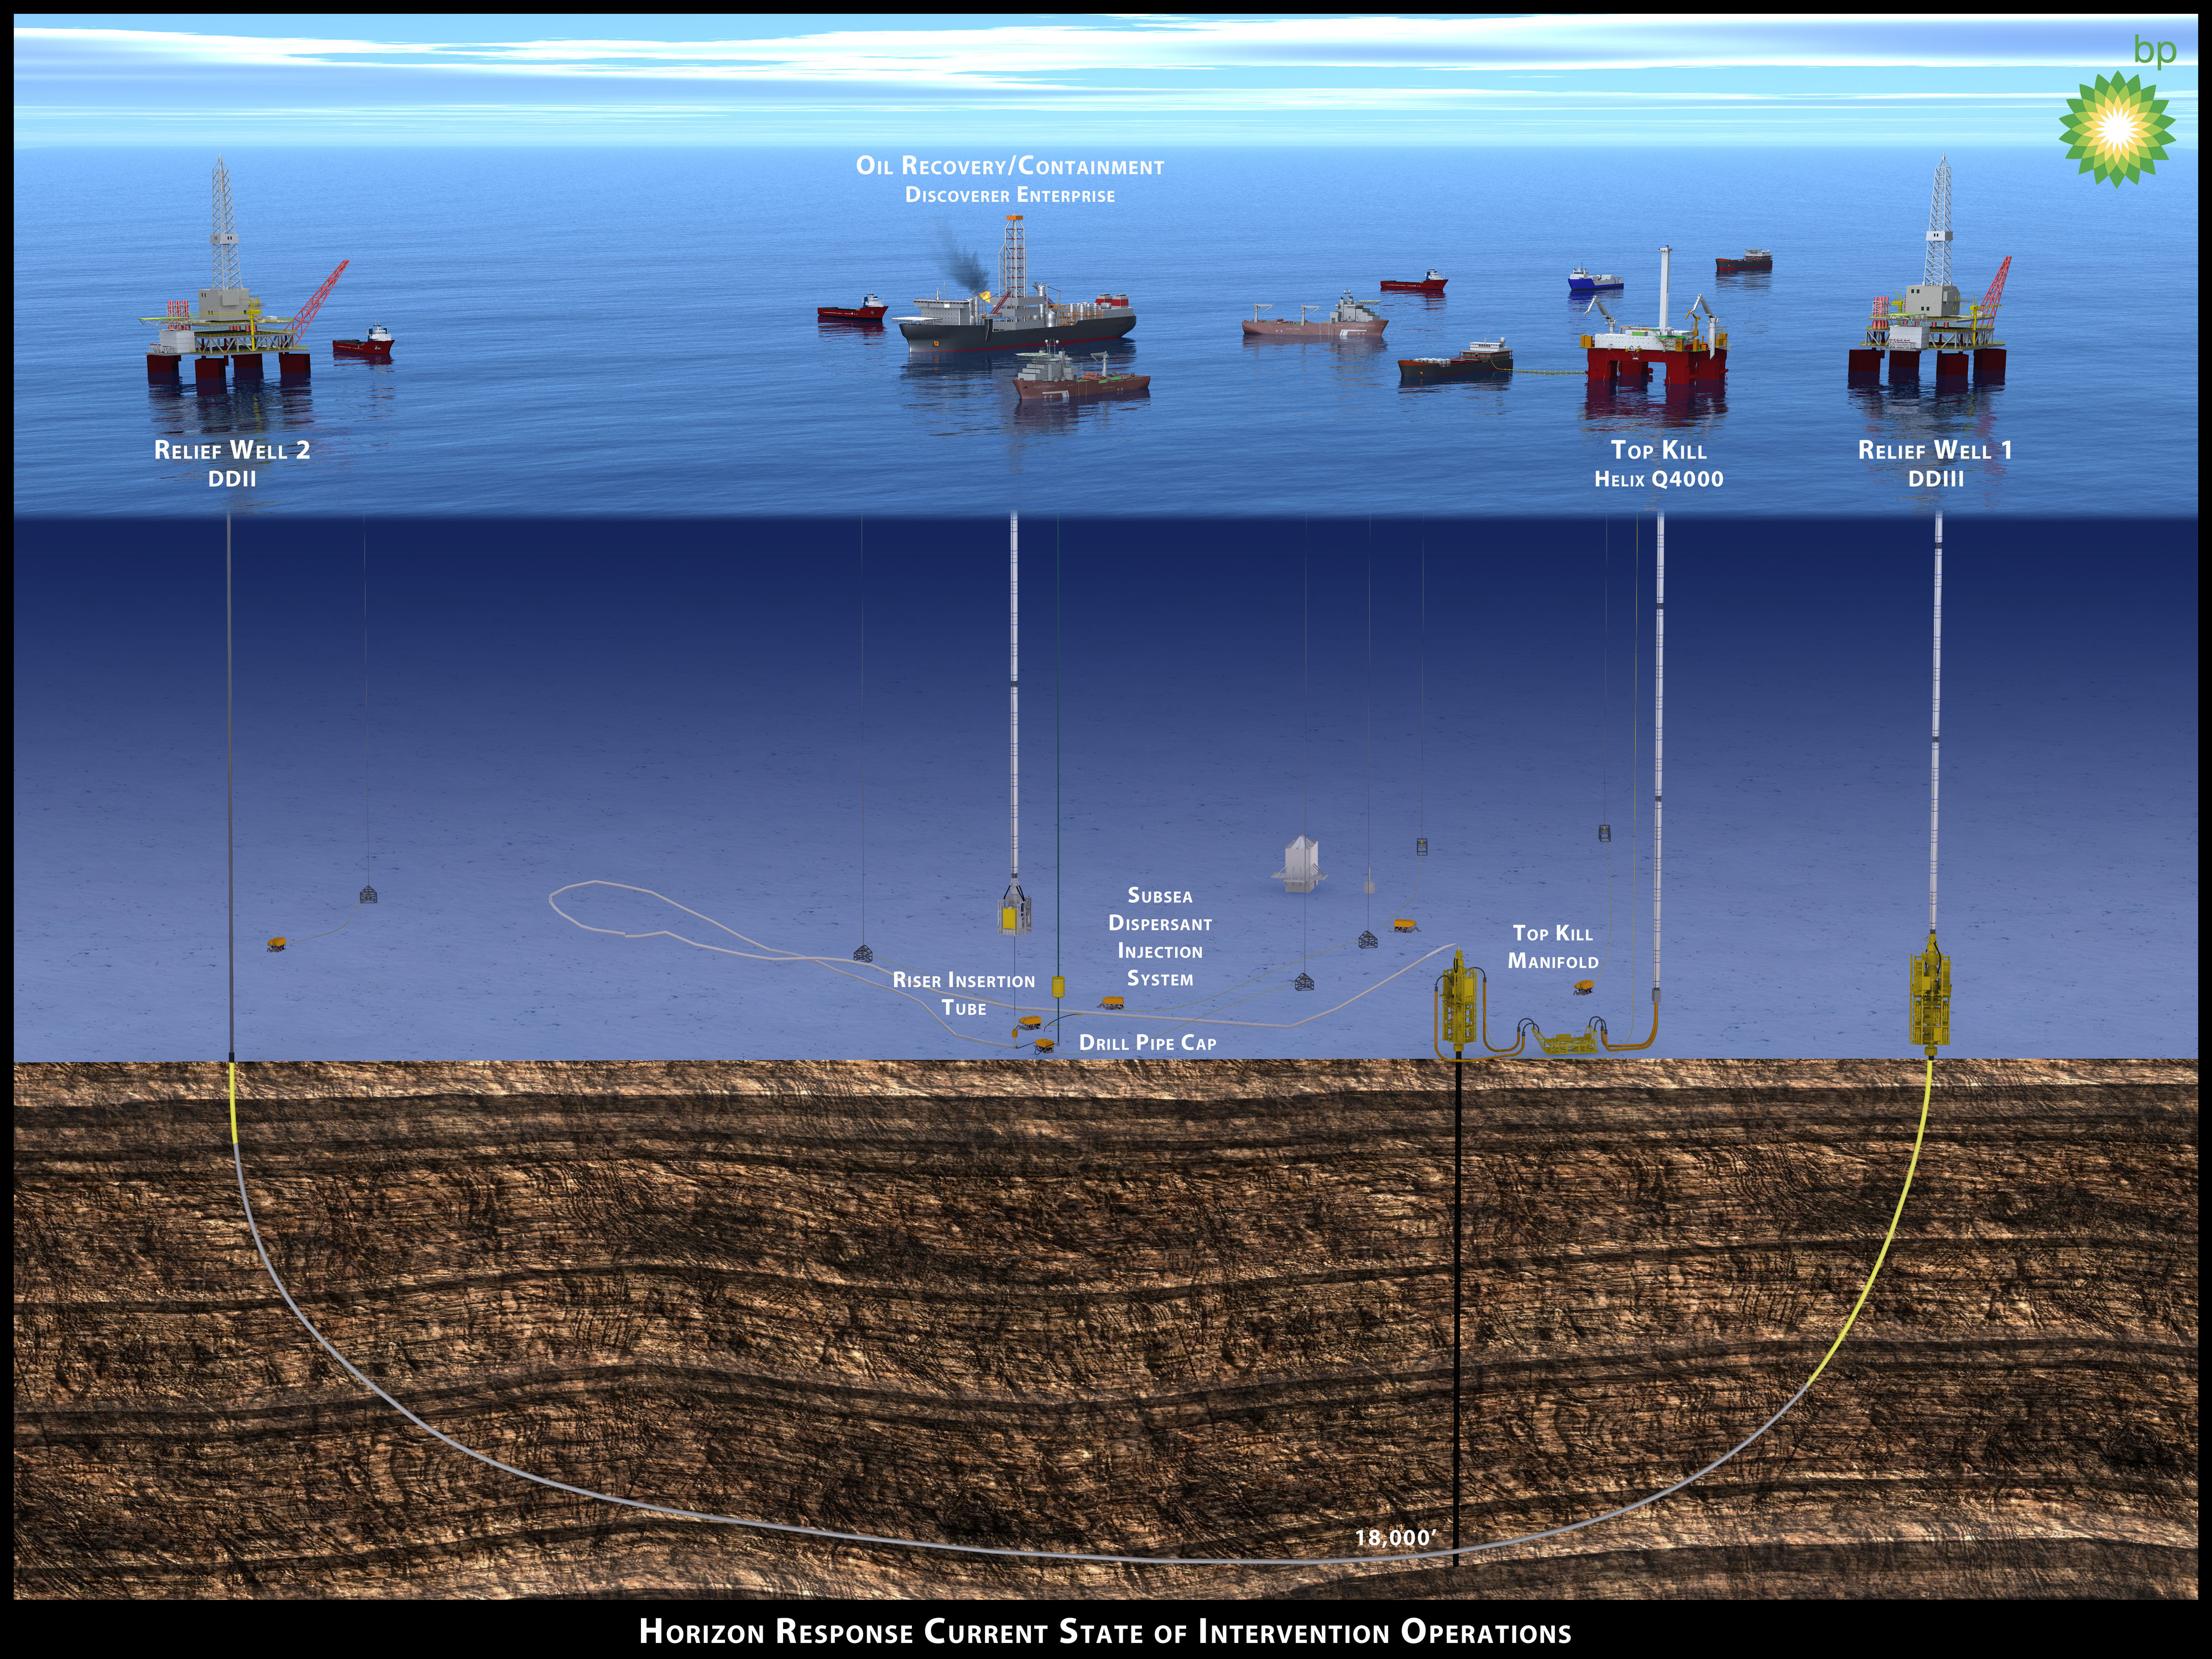 bp deep water horizontal explosion We've shown a very significant example of the effect that an organization's culture has on the way in which it views risk through the context of bp's macondo well project where the deepwater horizon rig suffered a blowout and subsequent explosion.